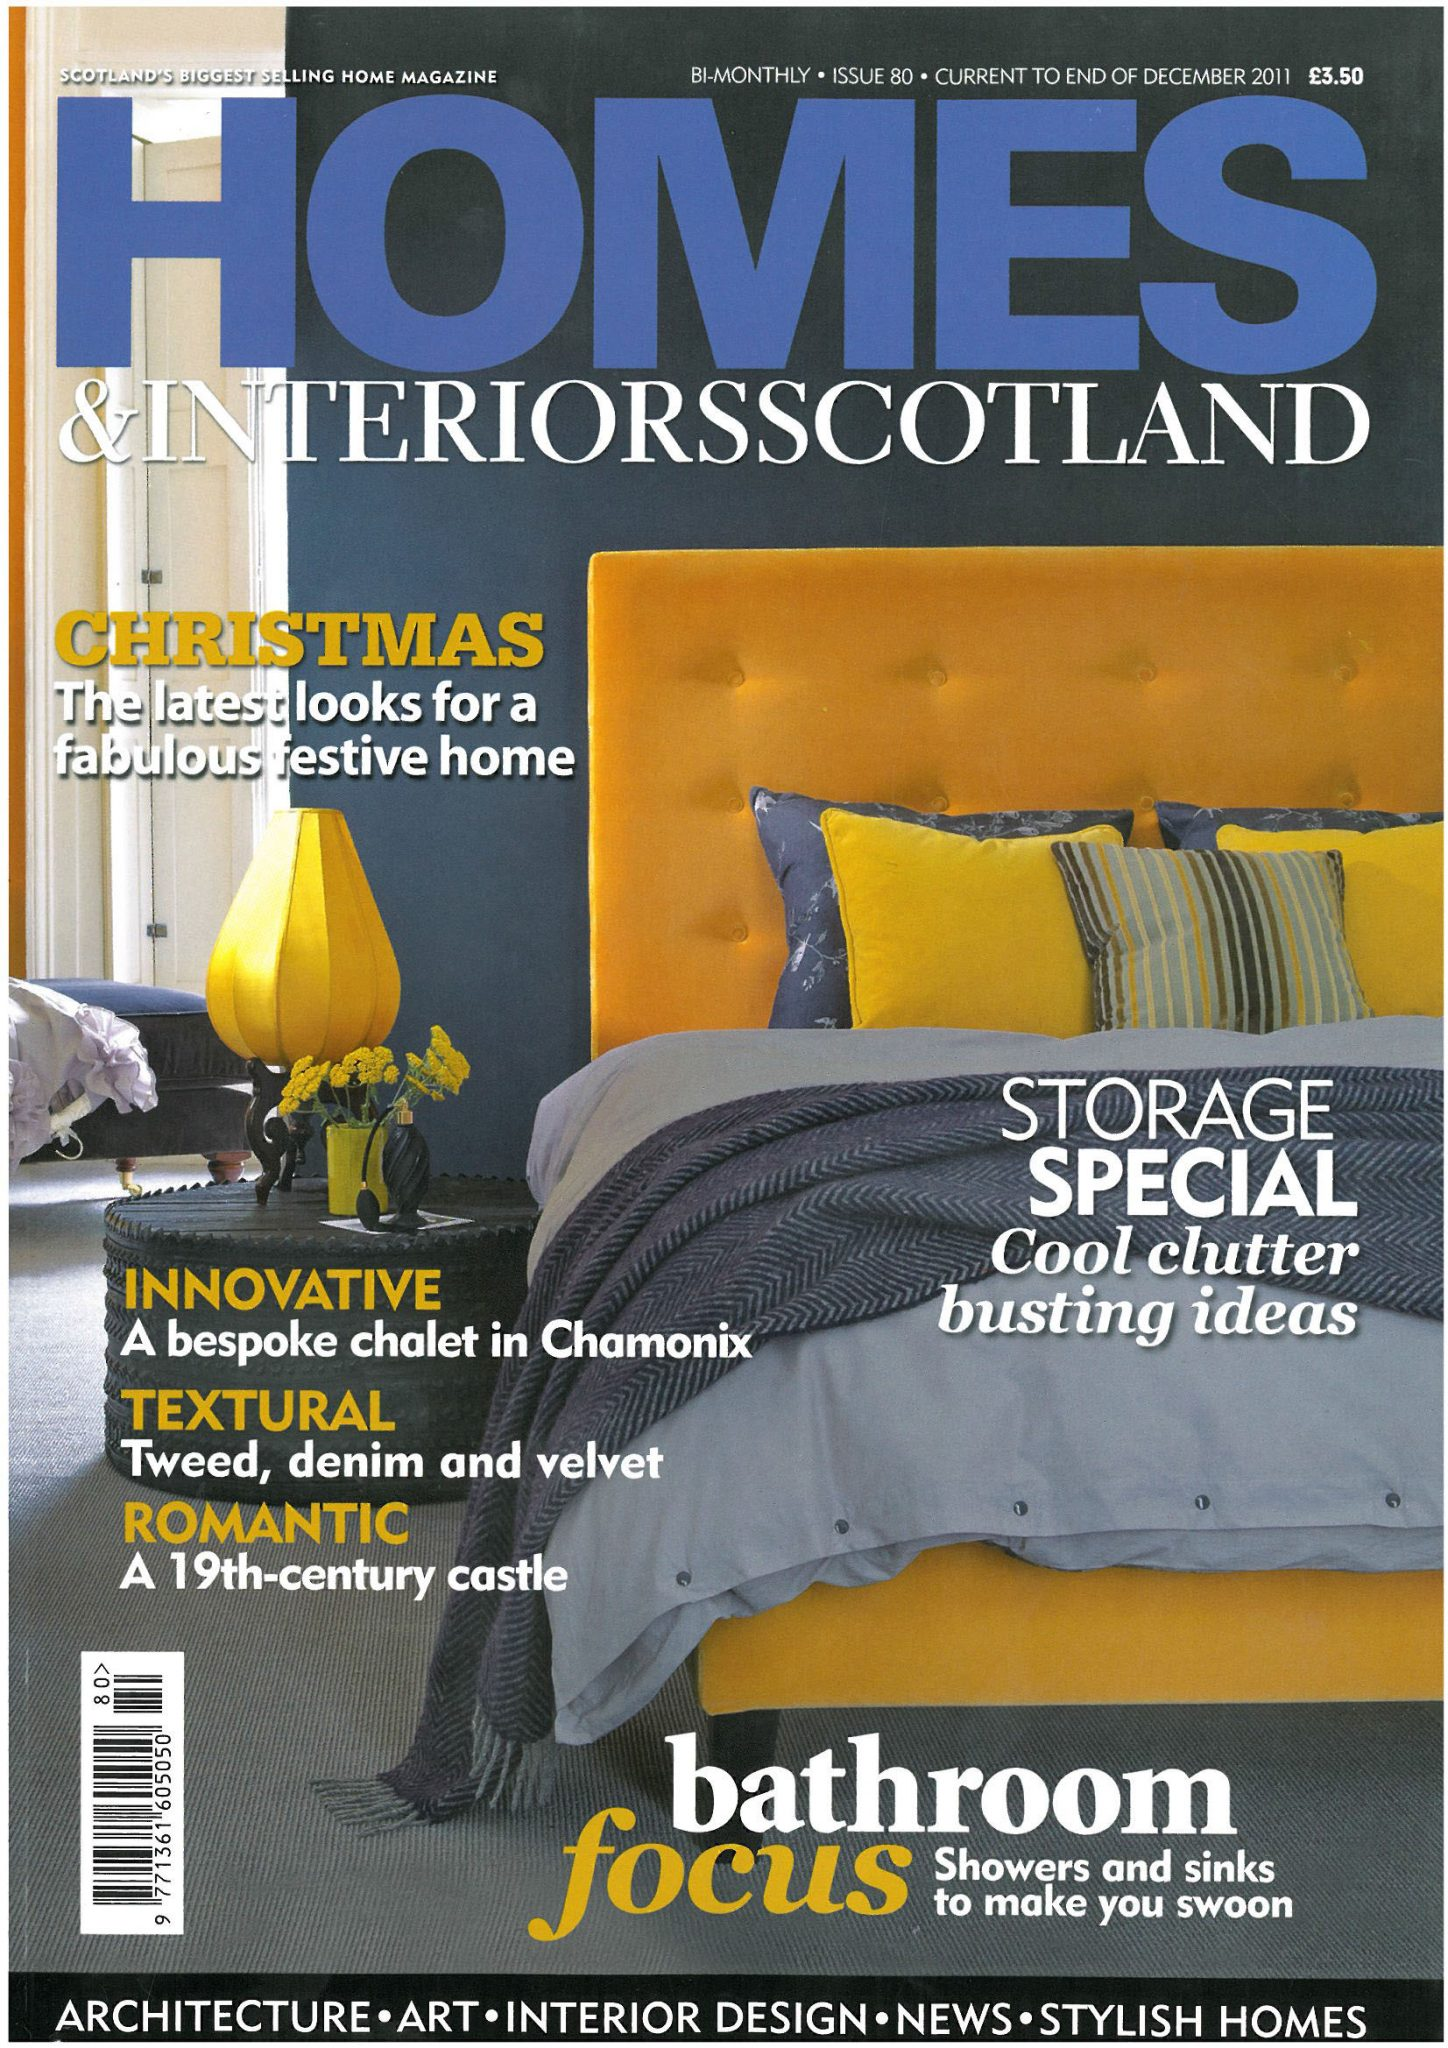 In the Press – Homes & Interiors Scotland feature